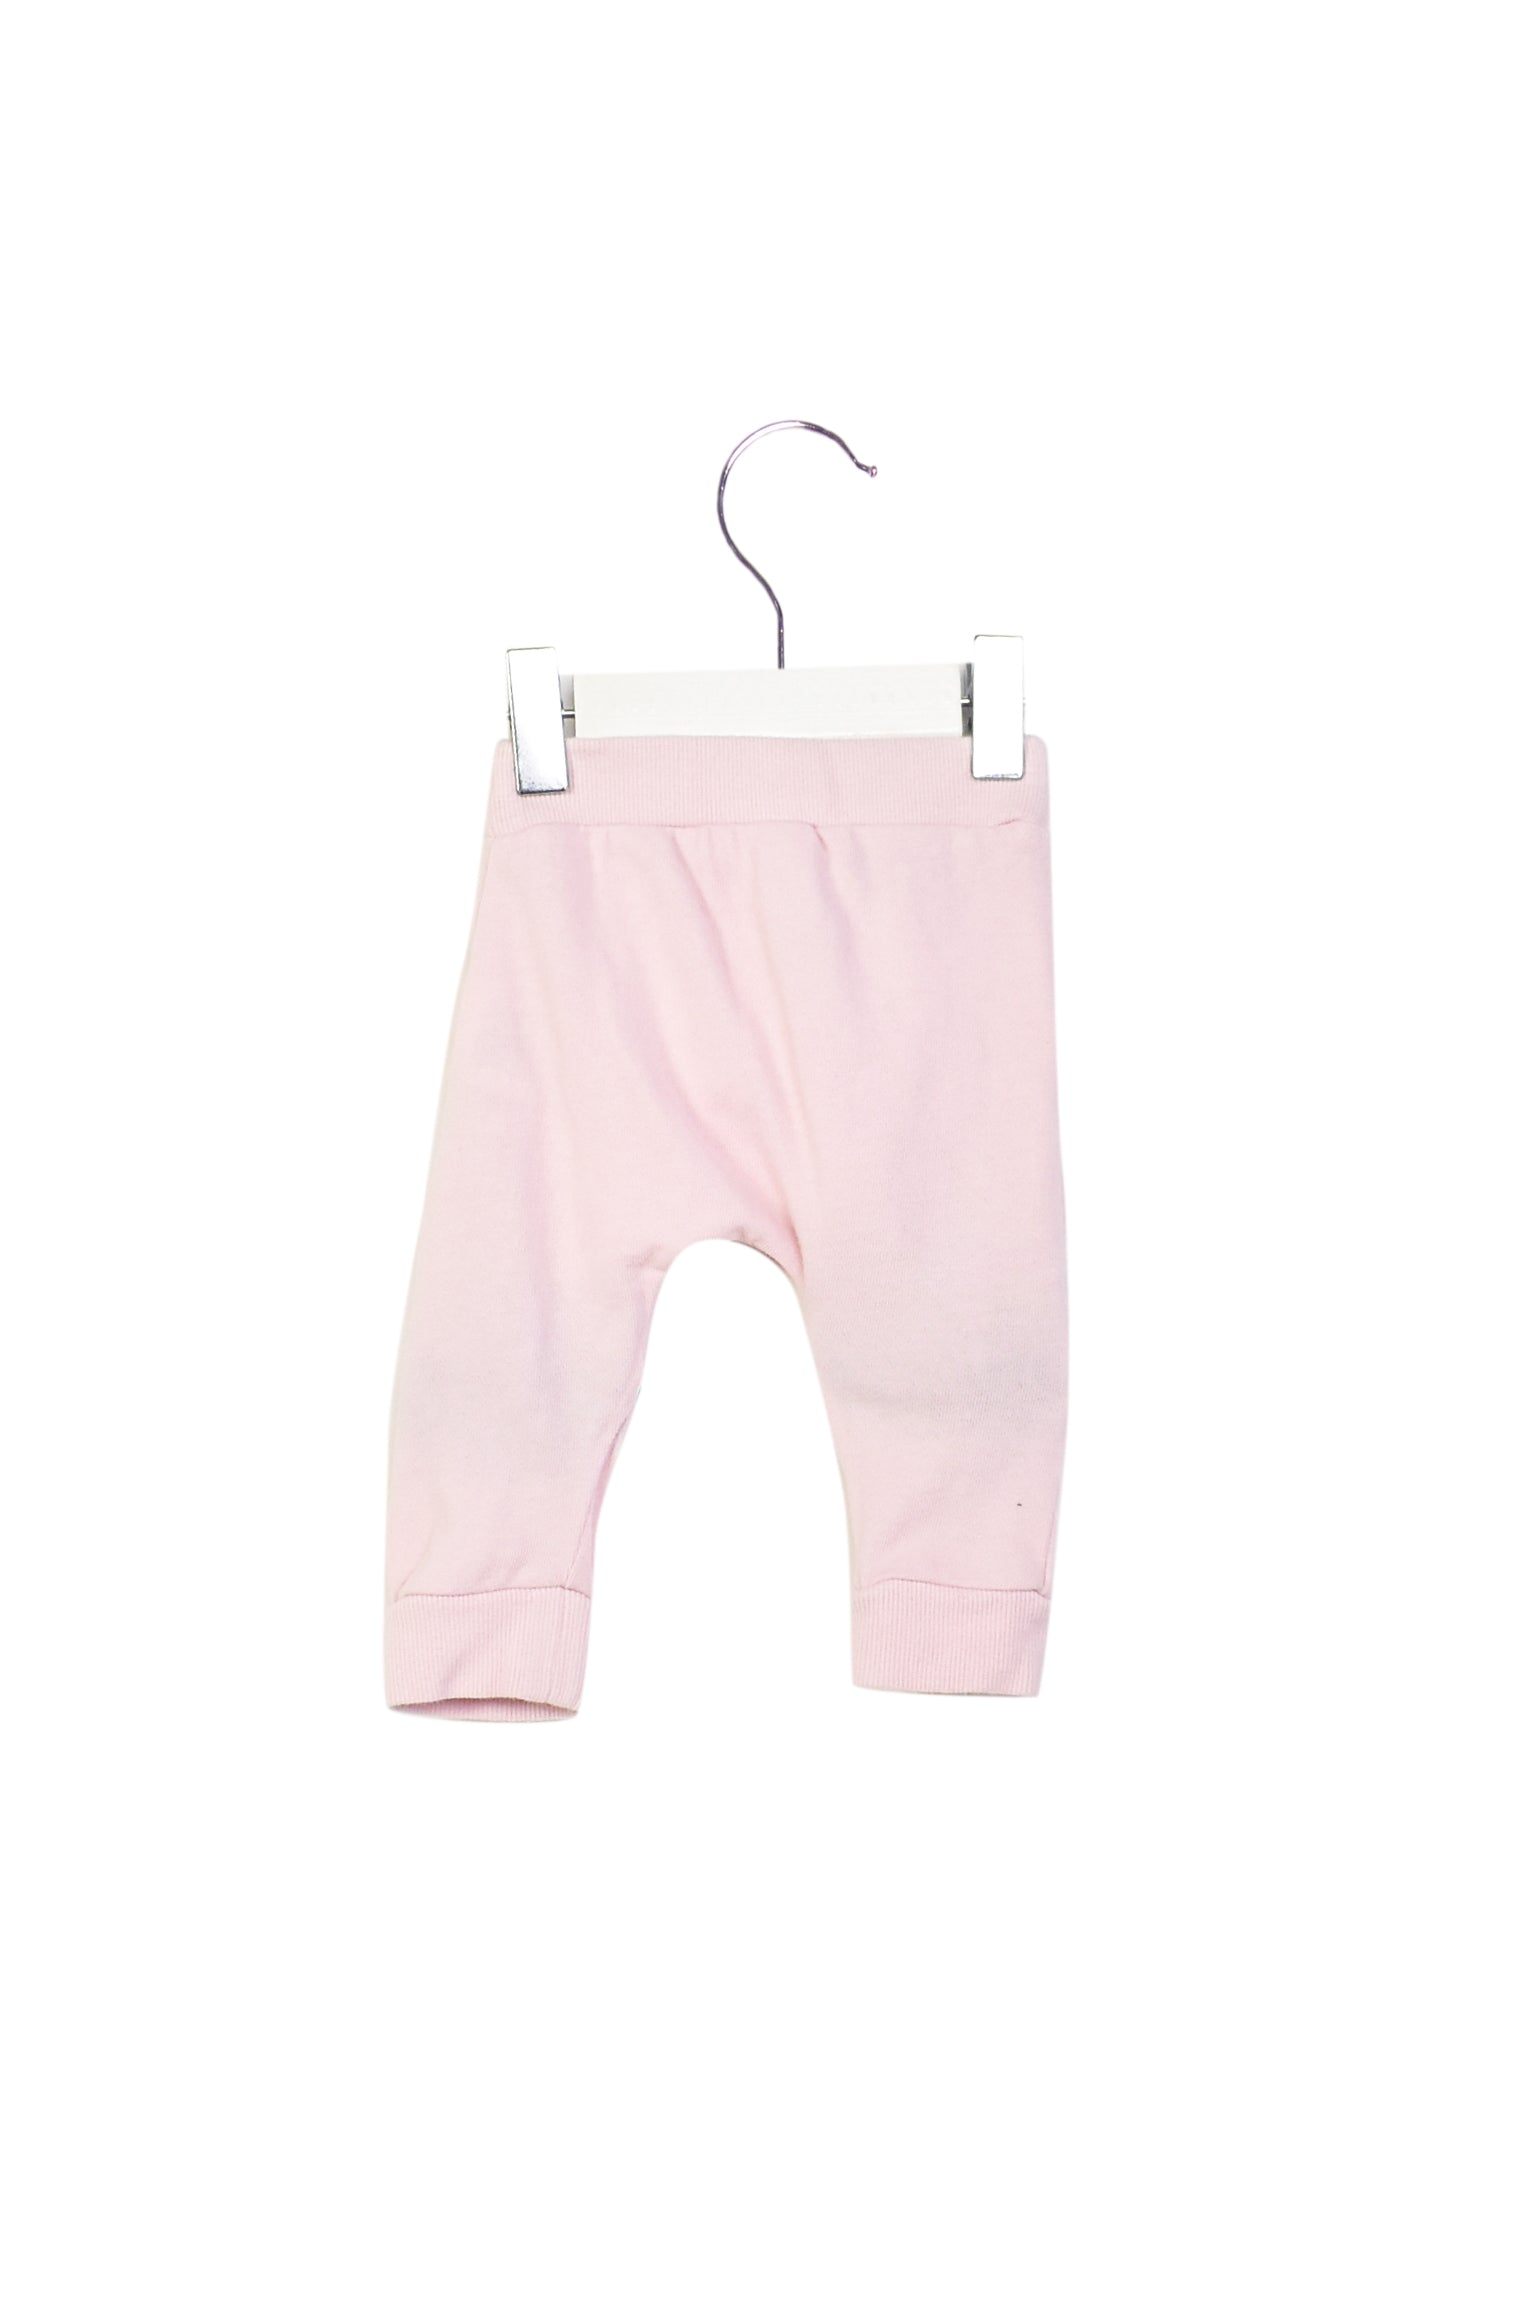 10013157 Seed Baby ~ Sweatpants 0-3M at Retykle